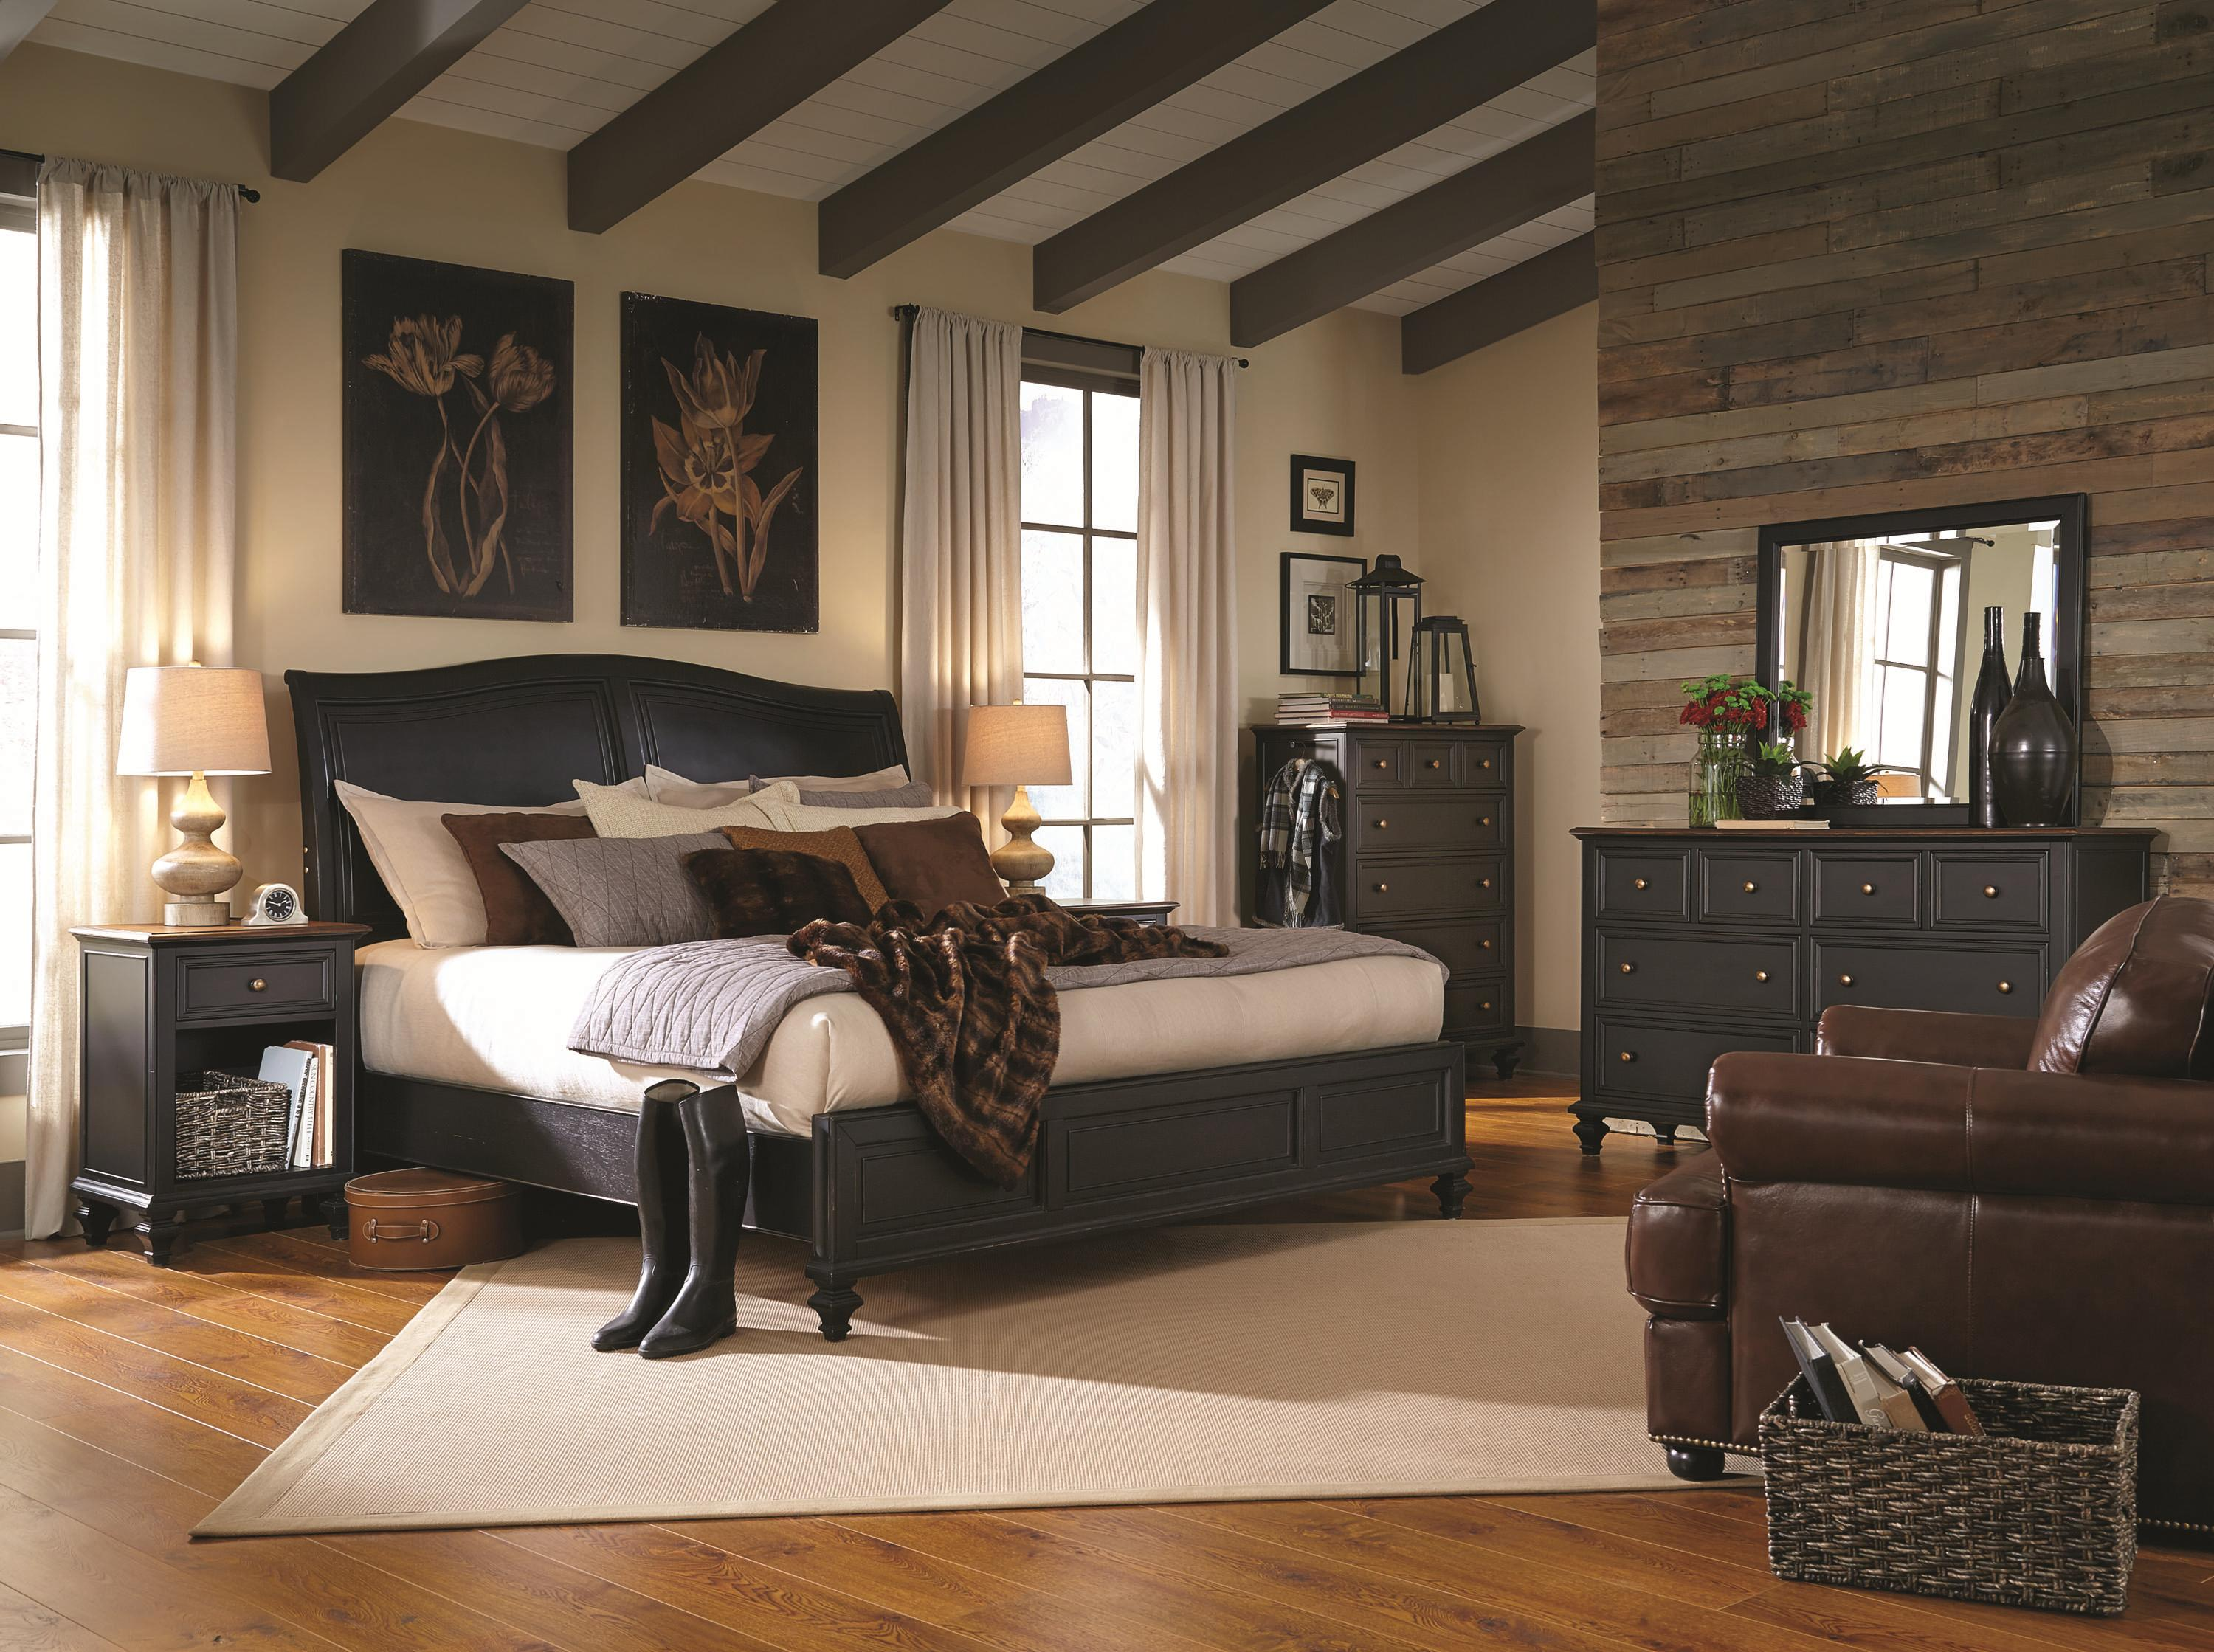 Aspenhome Ravenwood Queen Bedroom Group - Item Number: I65 Queen Bedroom Group 1